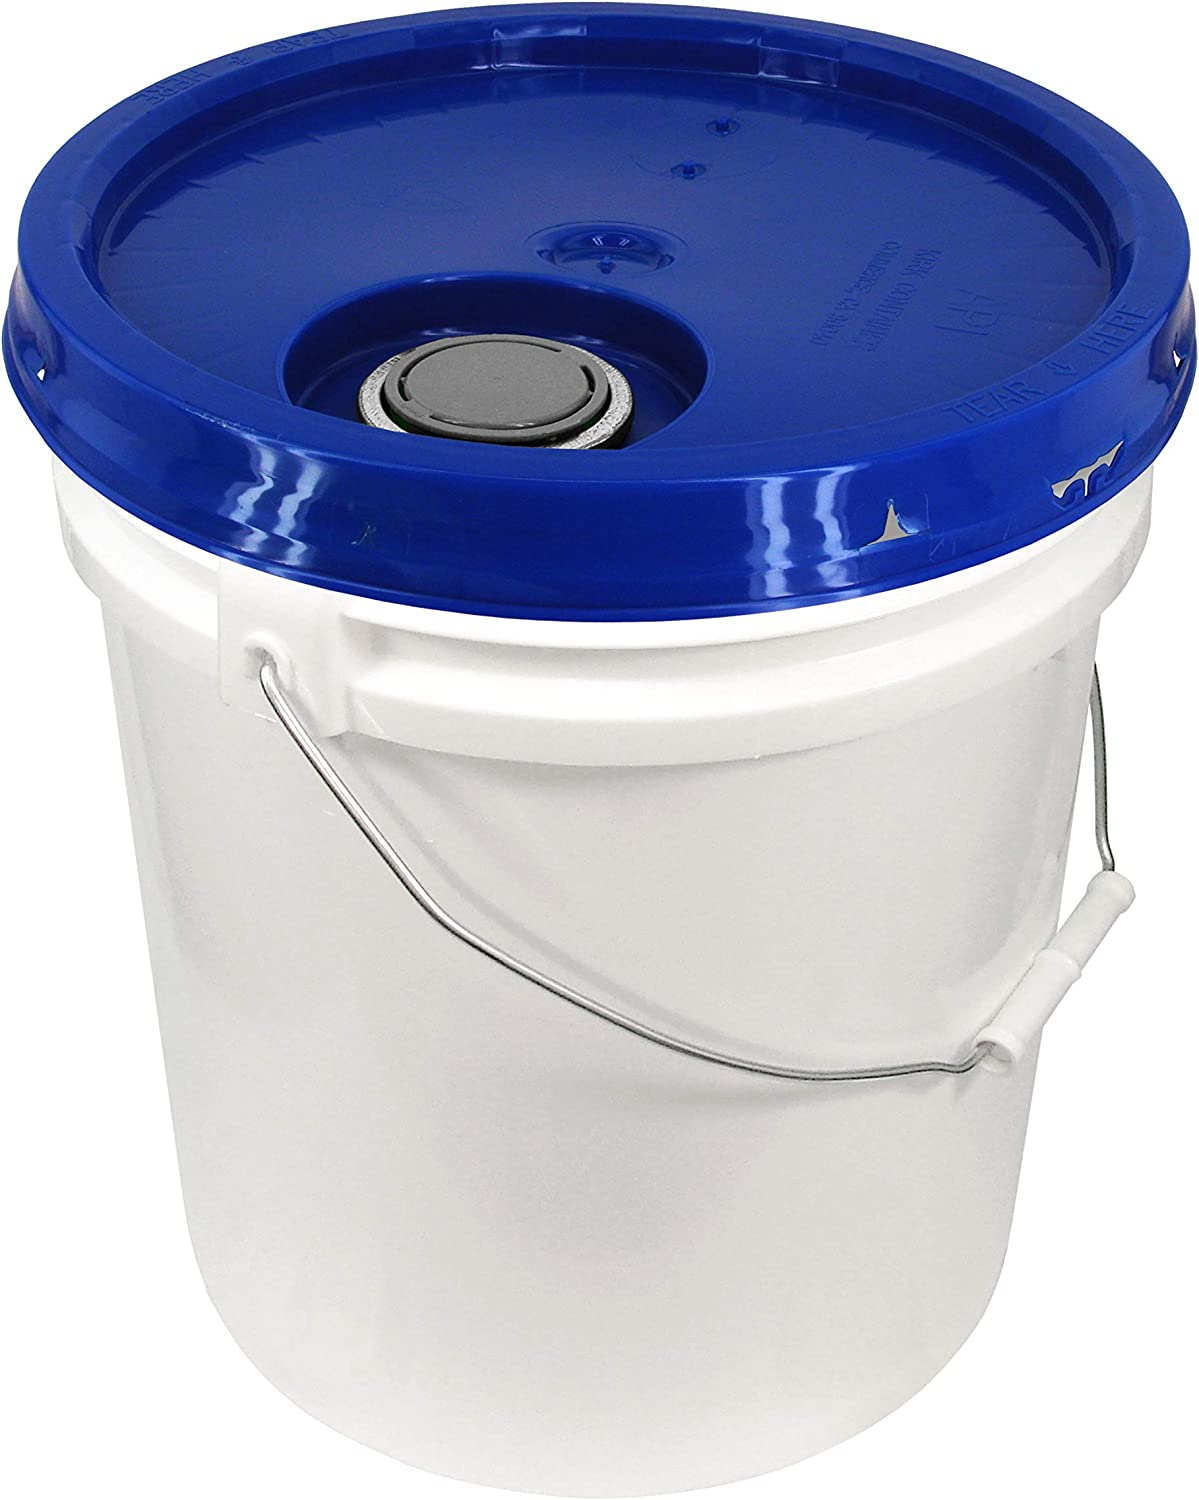 Black White 5 Gallon 90 mil Bucket with Snap On Lid